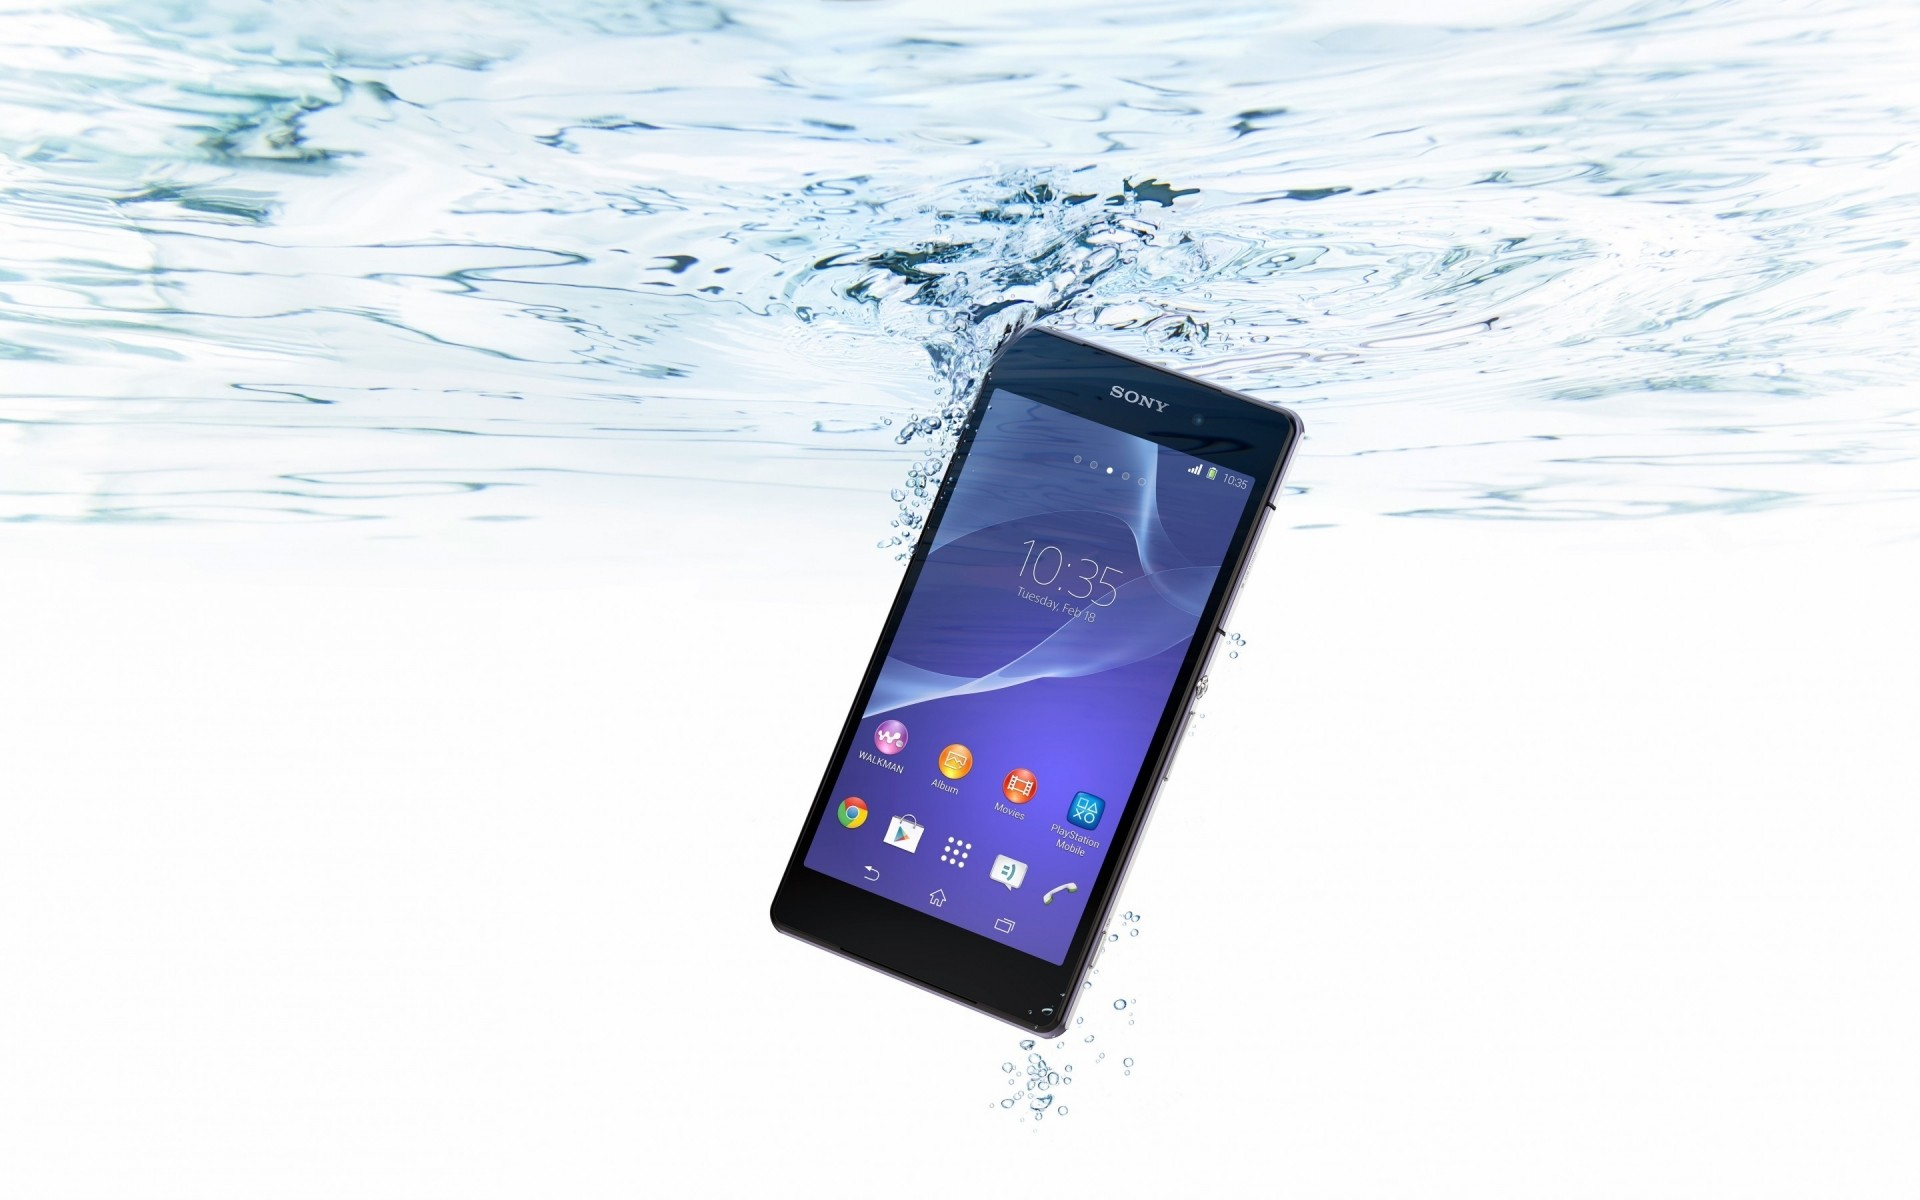 sony telephone touch technology screen internet wireless electronics sony xperia z2 xperia z2 smartphone tech gadgets